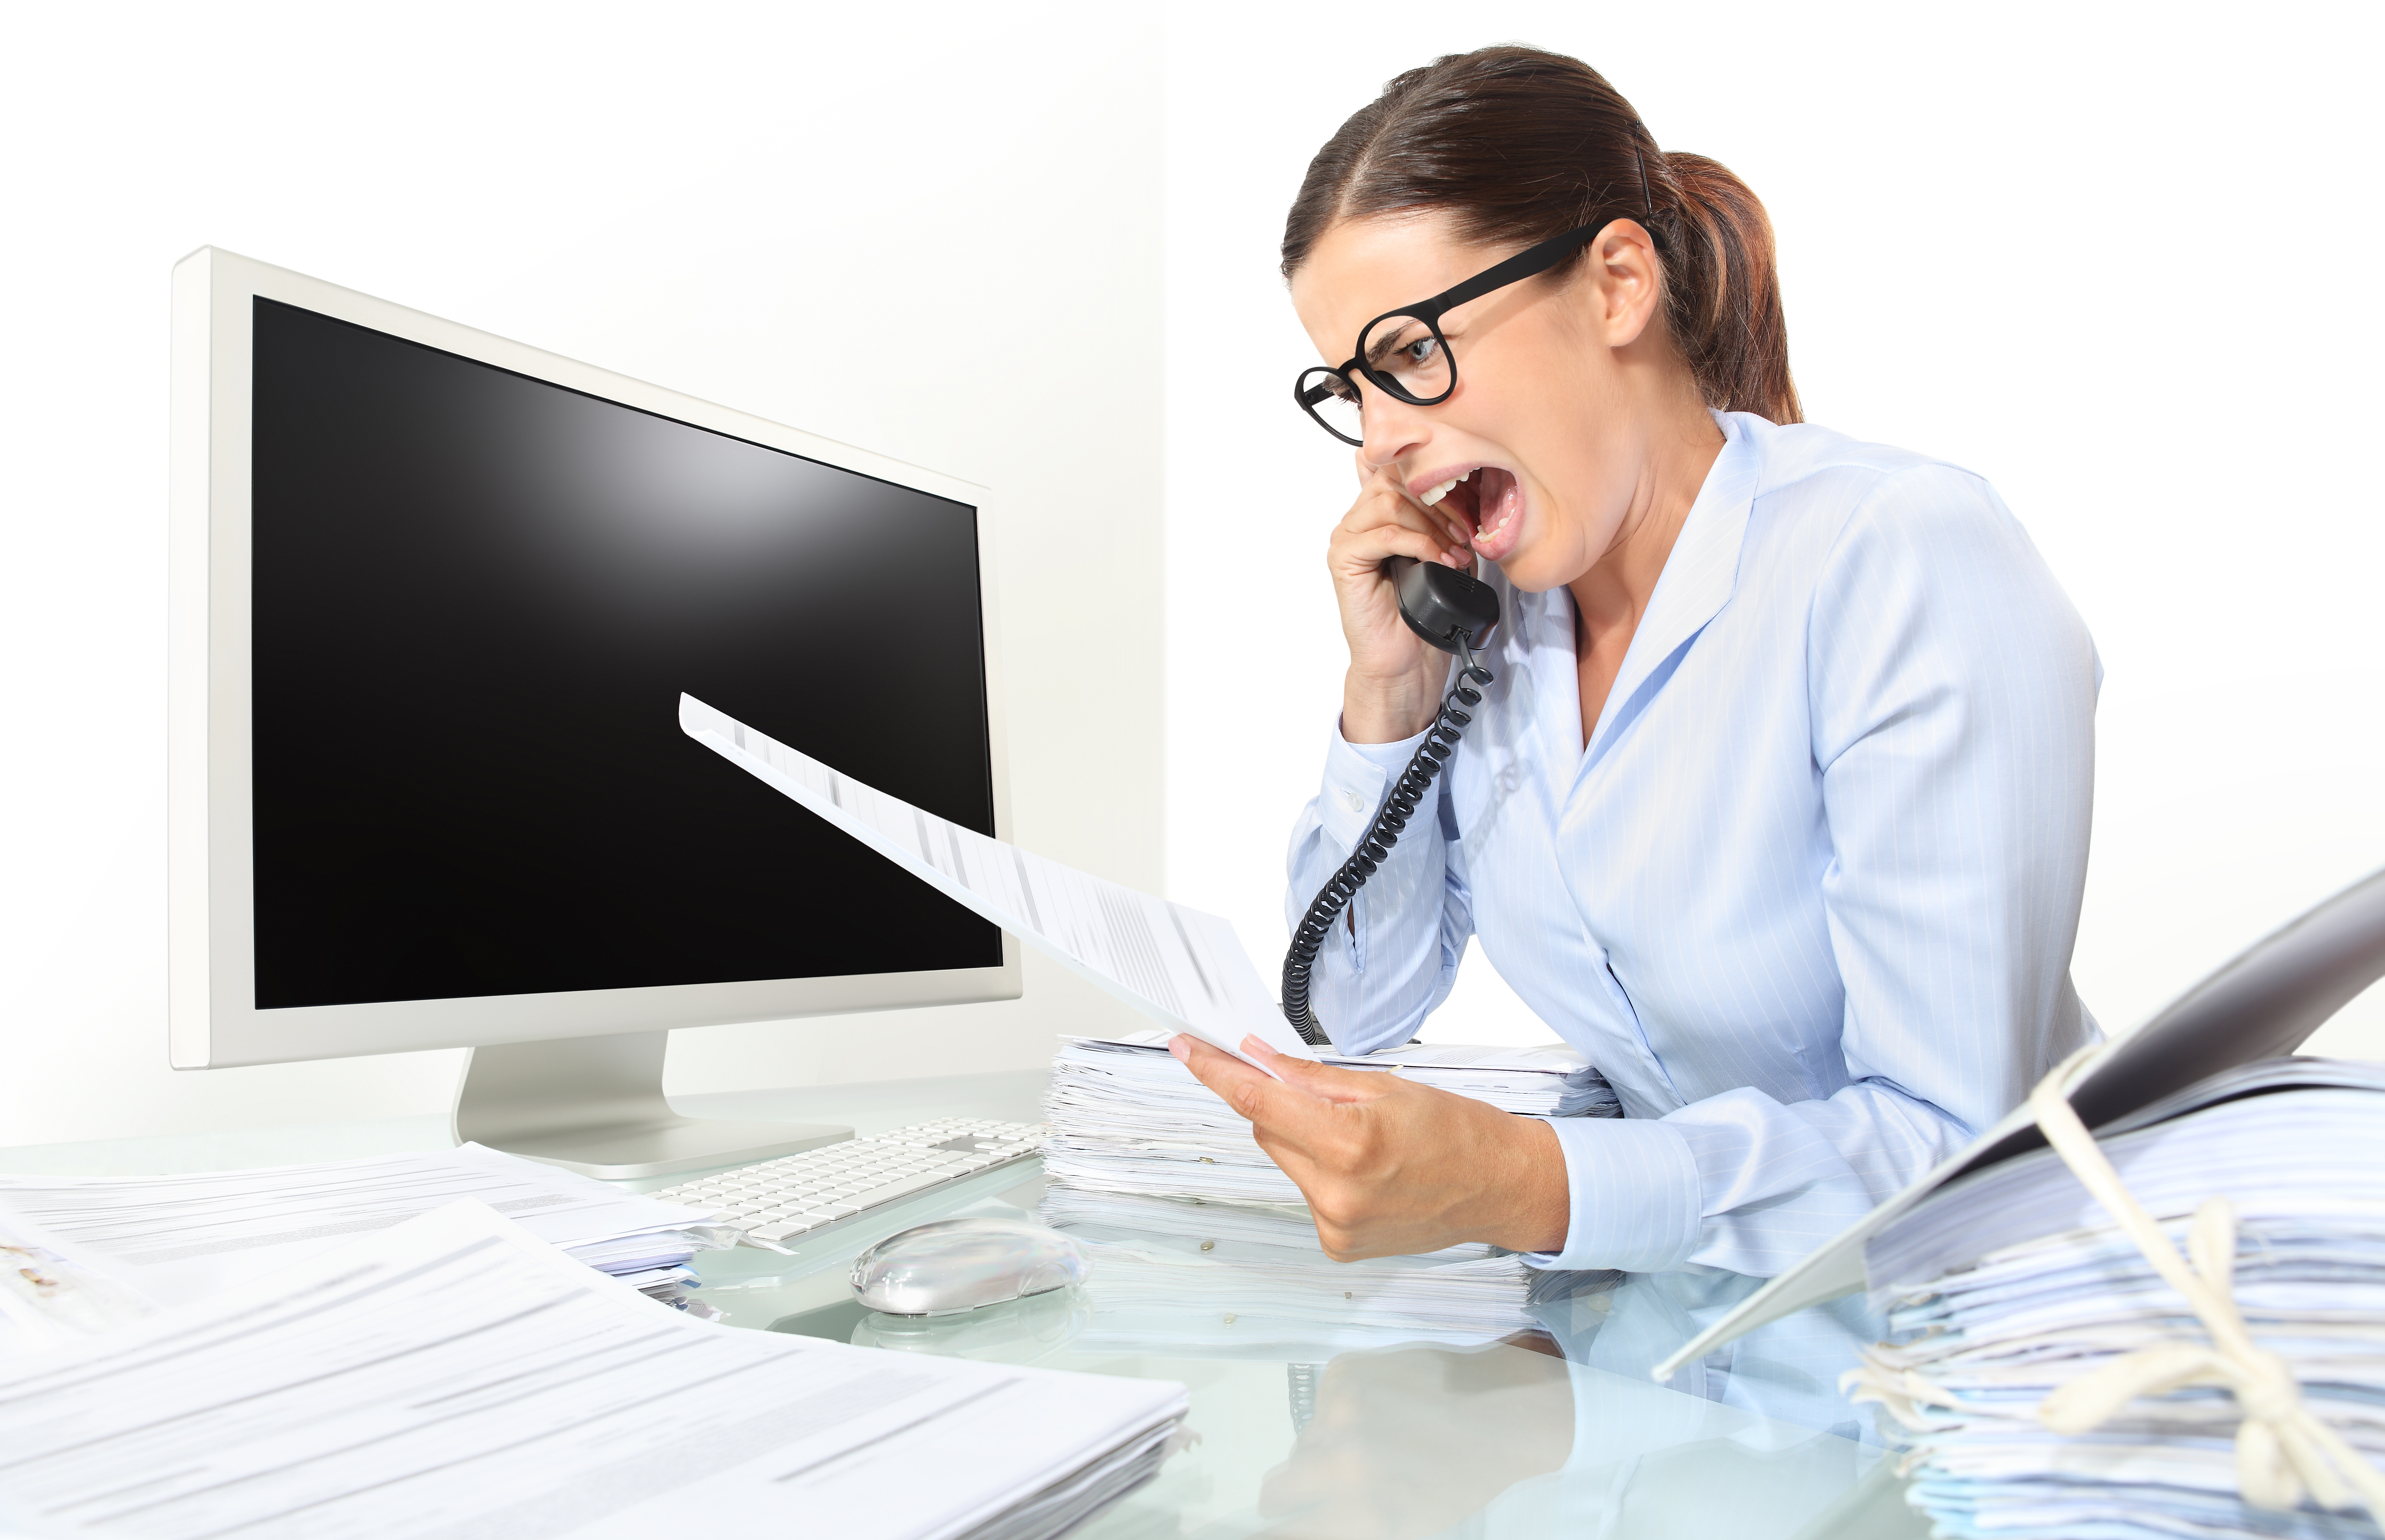 Woman surprised as she speaks into telephone, bad debt concept